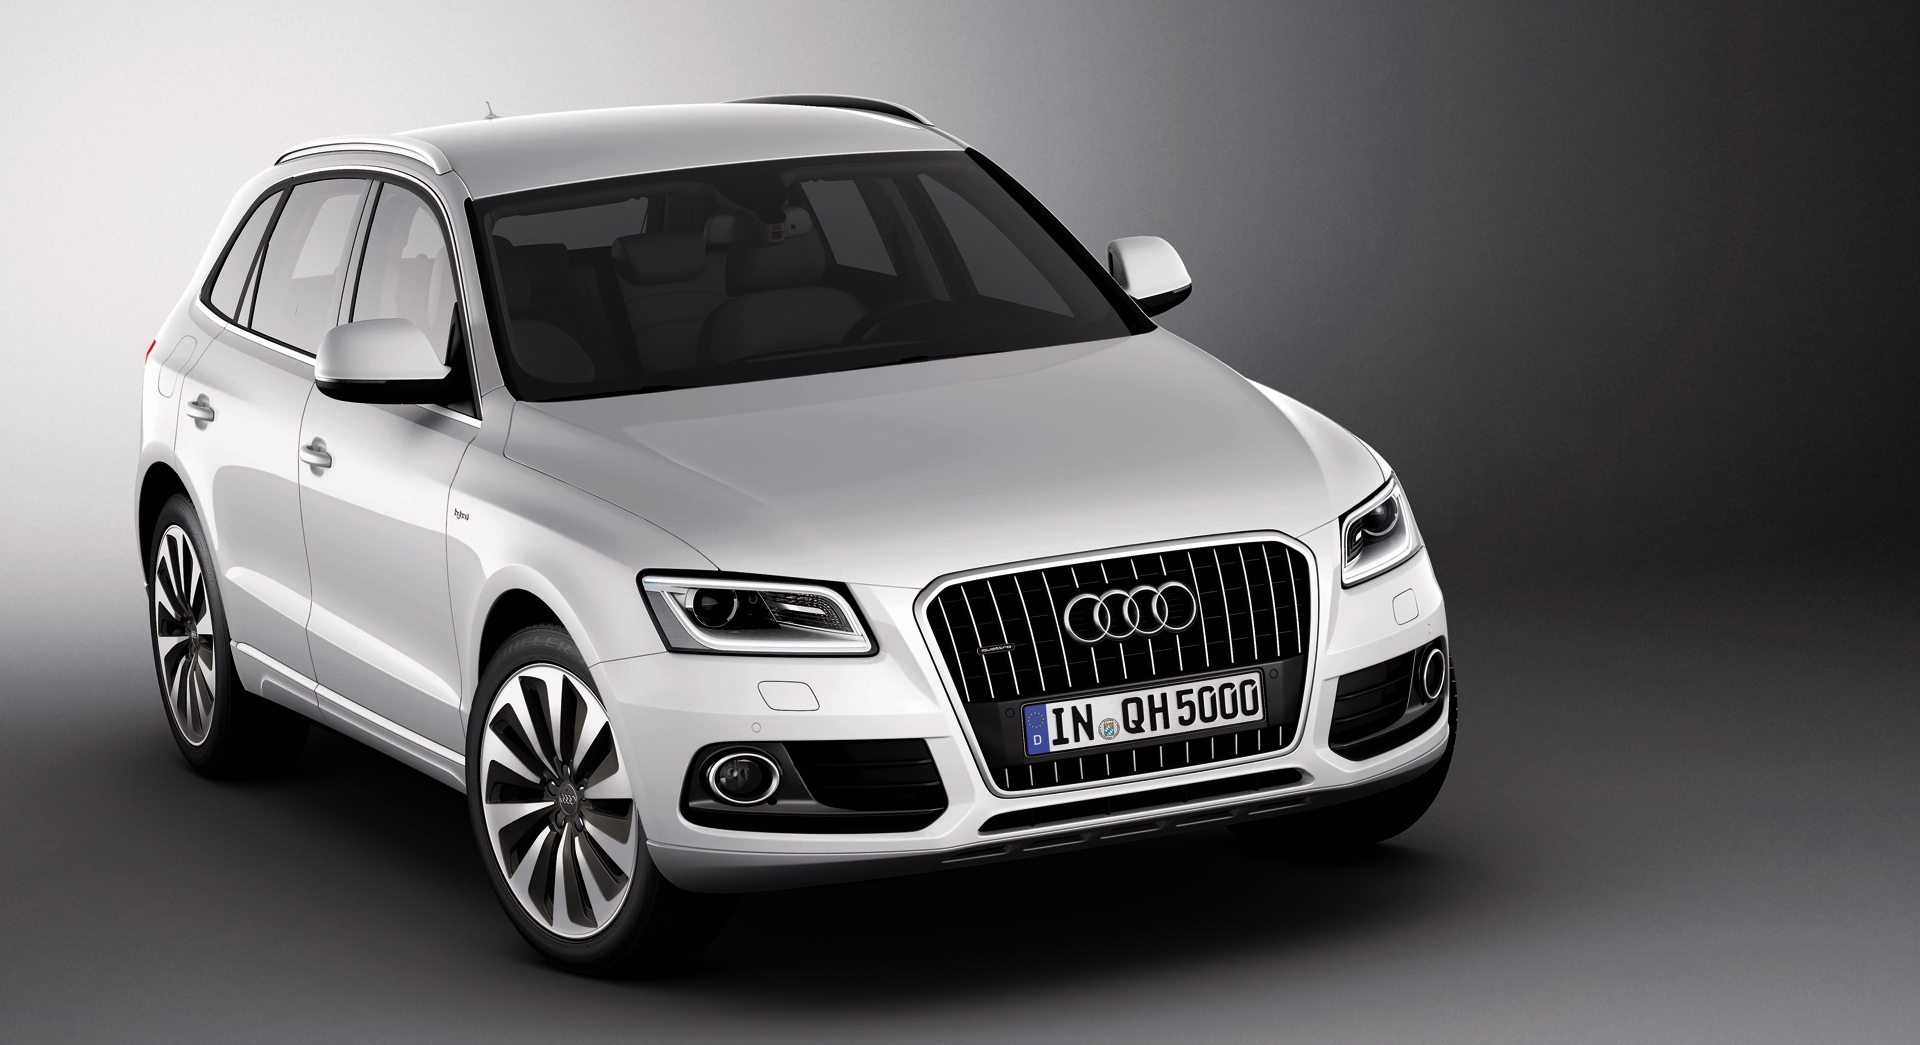 audi q5 hybrid hd desktop wallpapers 4k hd. Black Bedroom Furniture Sets. Home Design Ideas